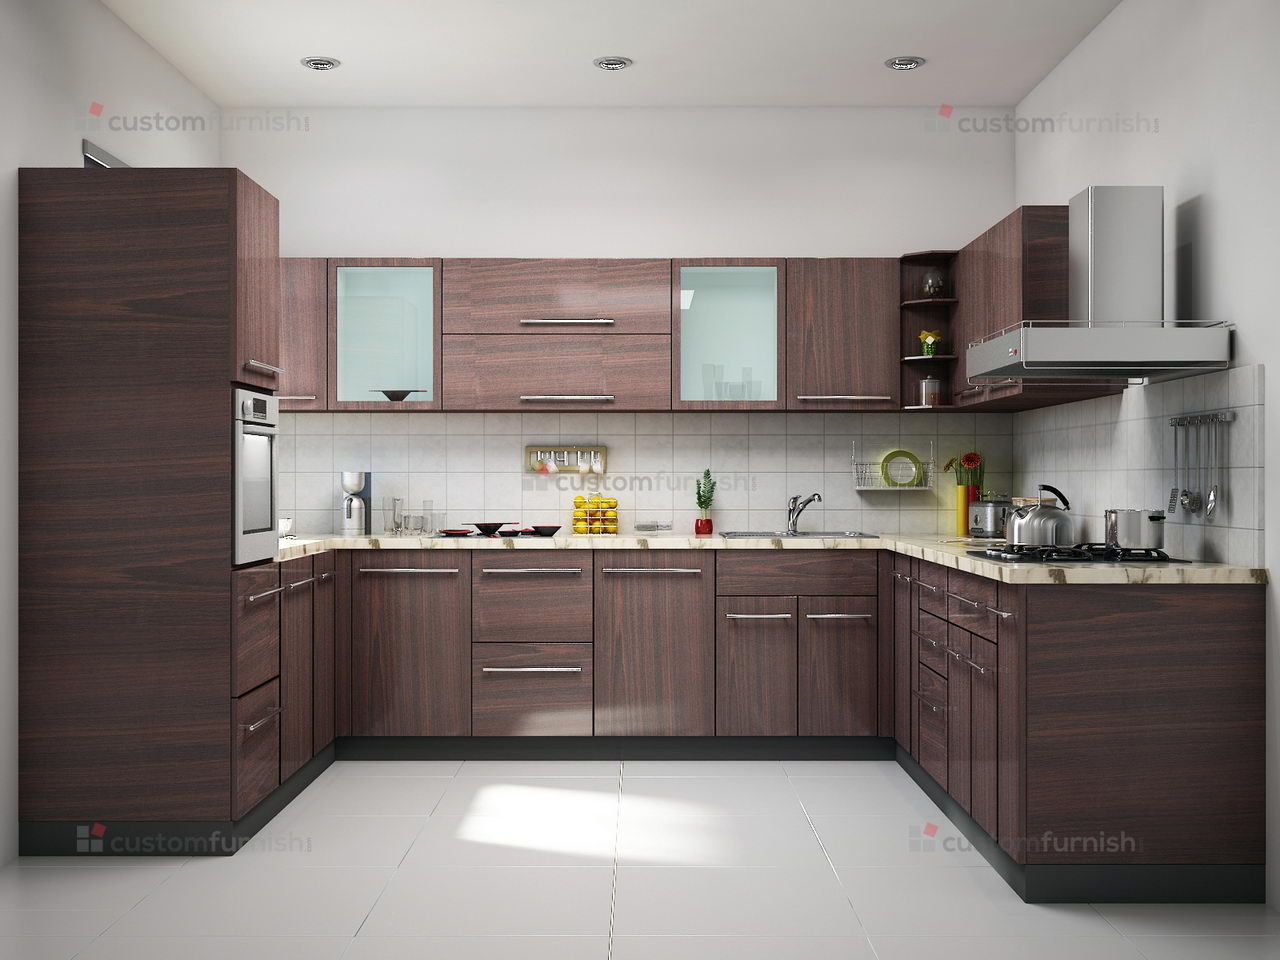 Small Kitchen Renovationscontemporary U Shaped Kitchen Designs Small Kitchen